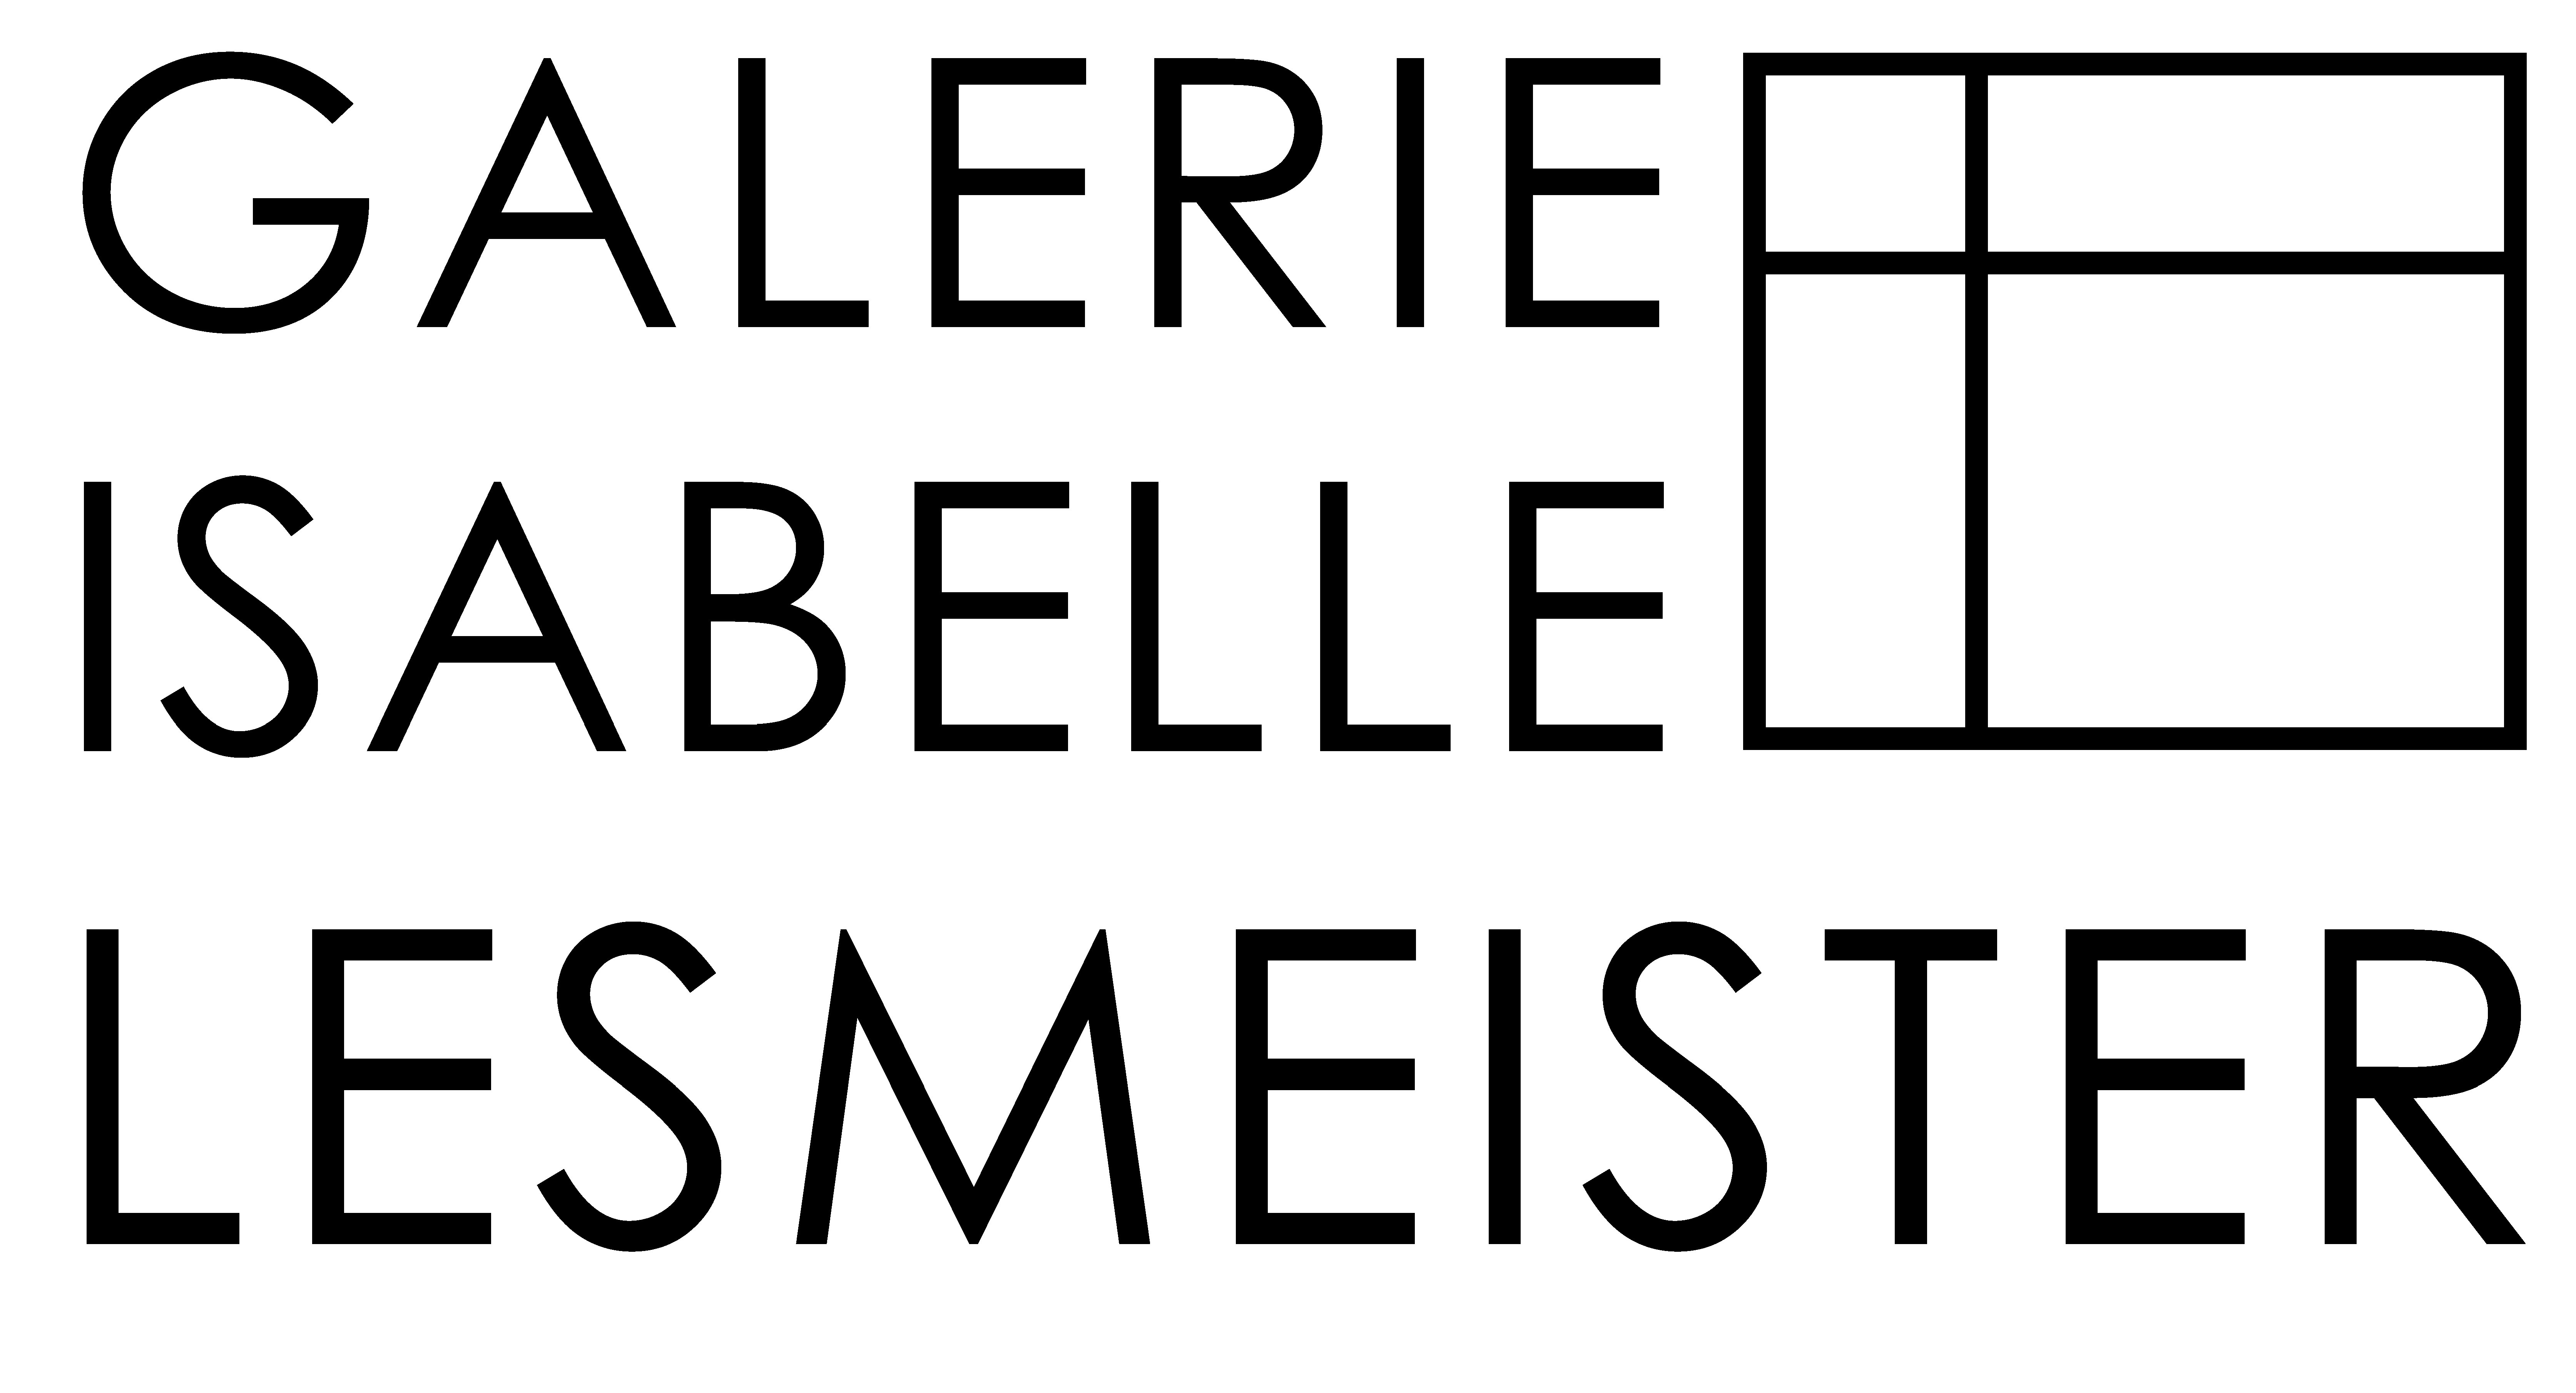 Galerie Lesmeister